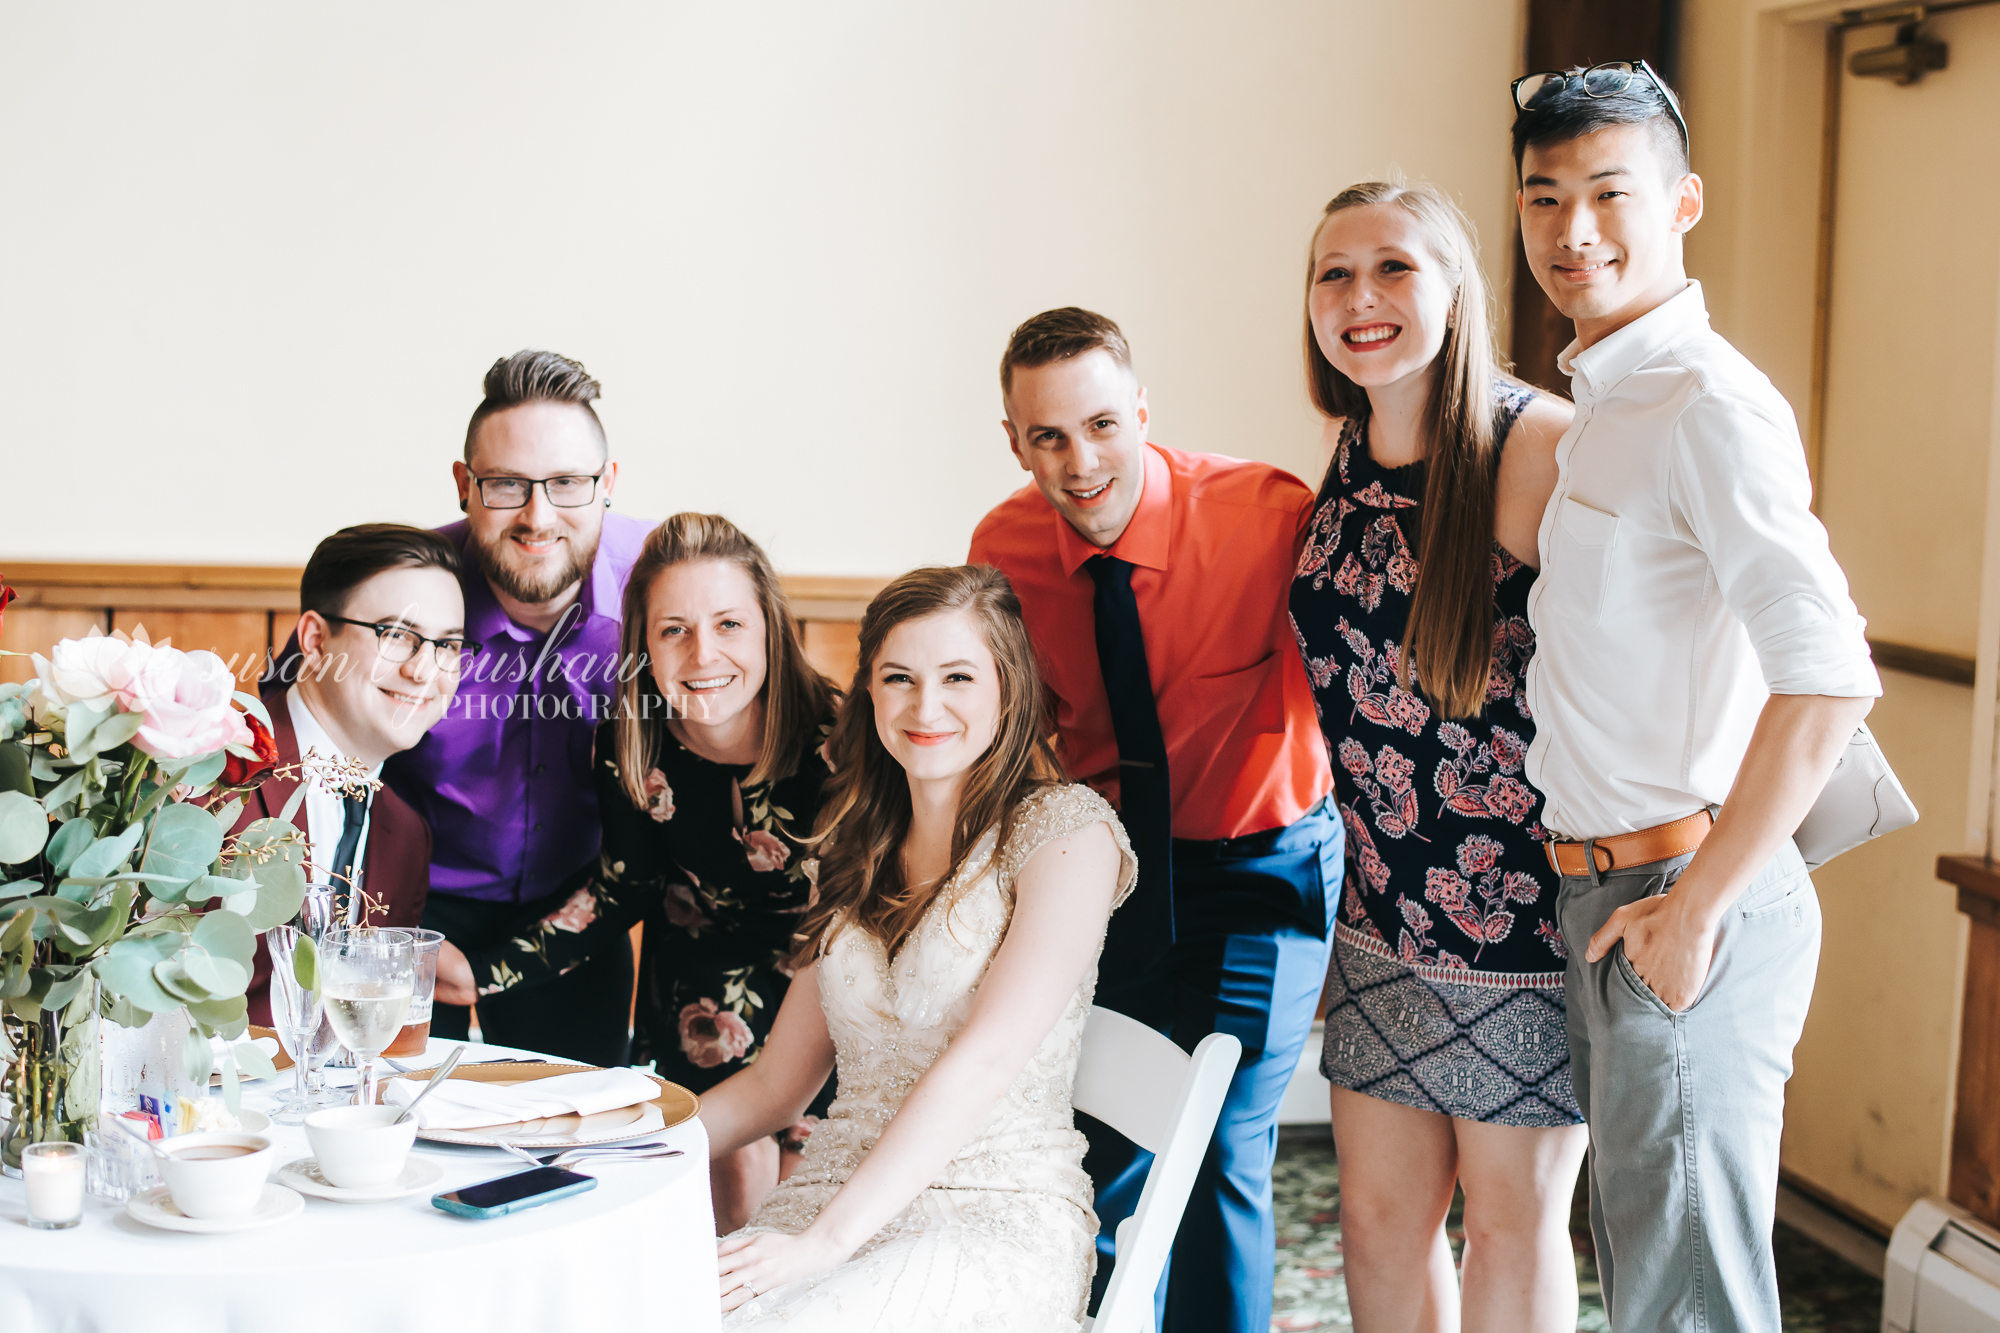 Chynna and John Wedding 05-18-2019 SLY Photography-109.jpg